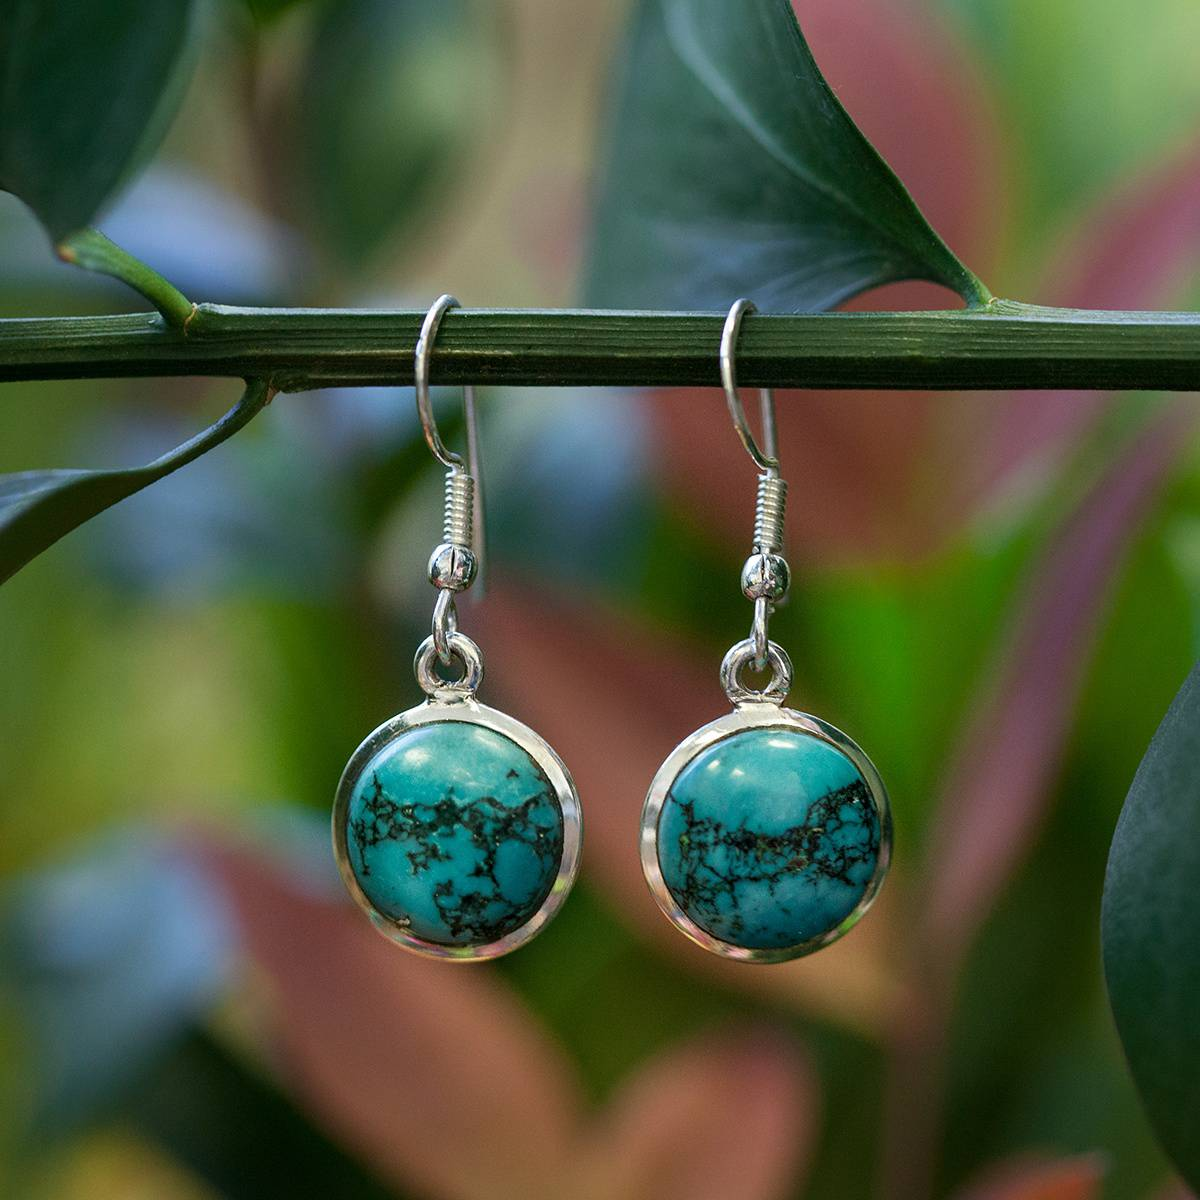 Round Turquoise Earrings 5_17